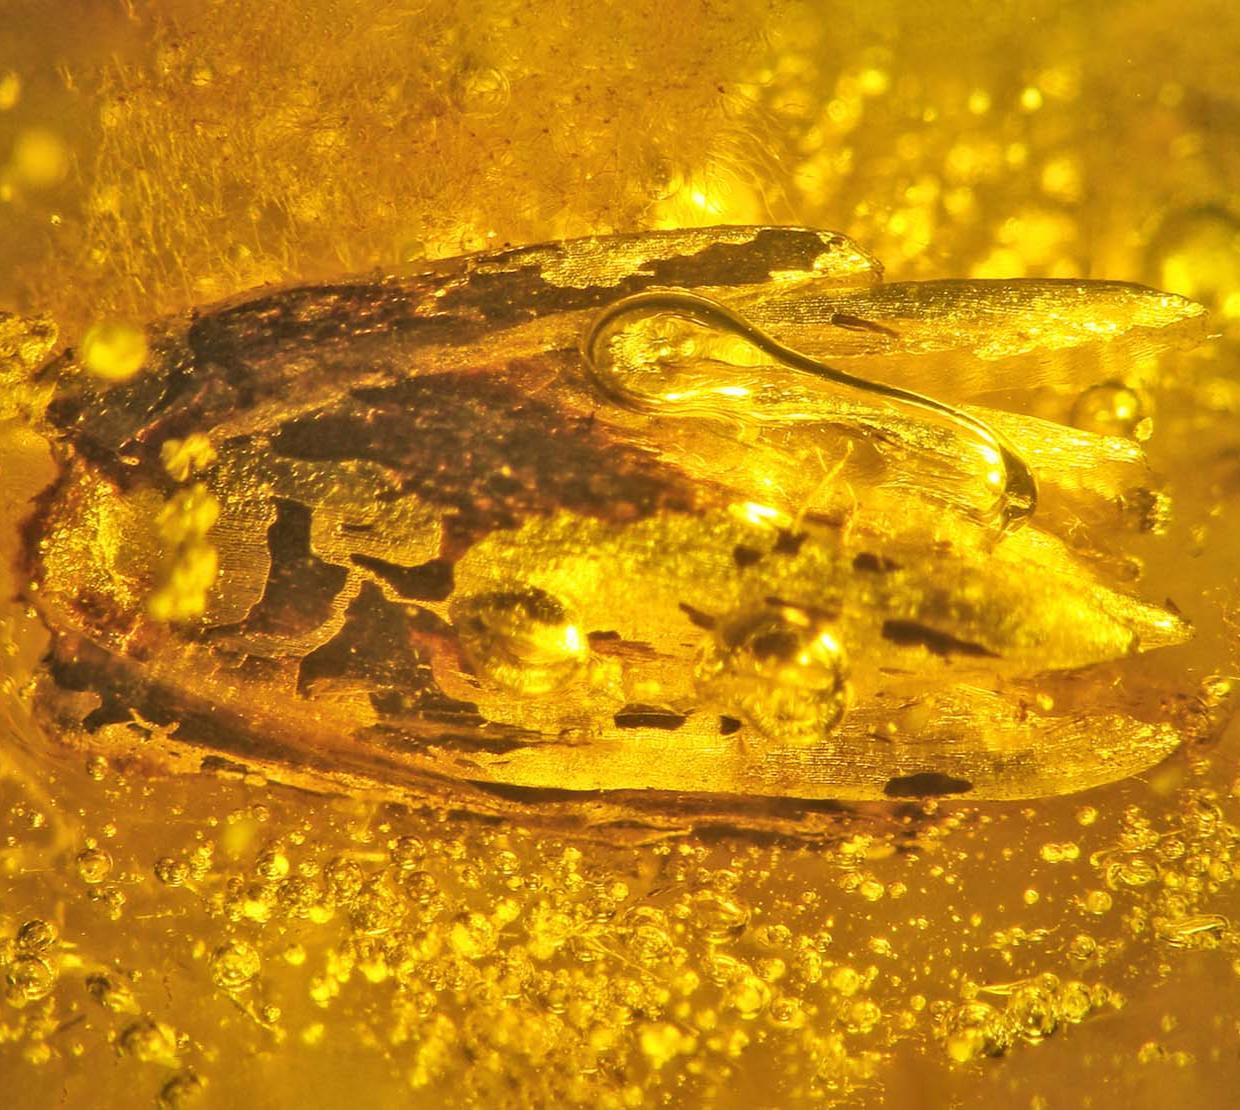 Eograminis balticus in yellow amber.